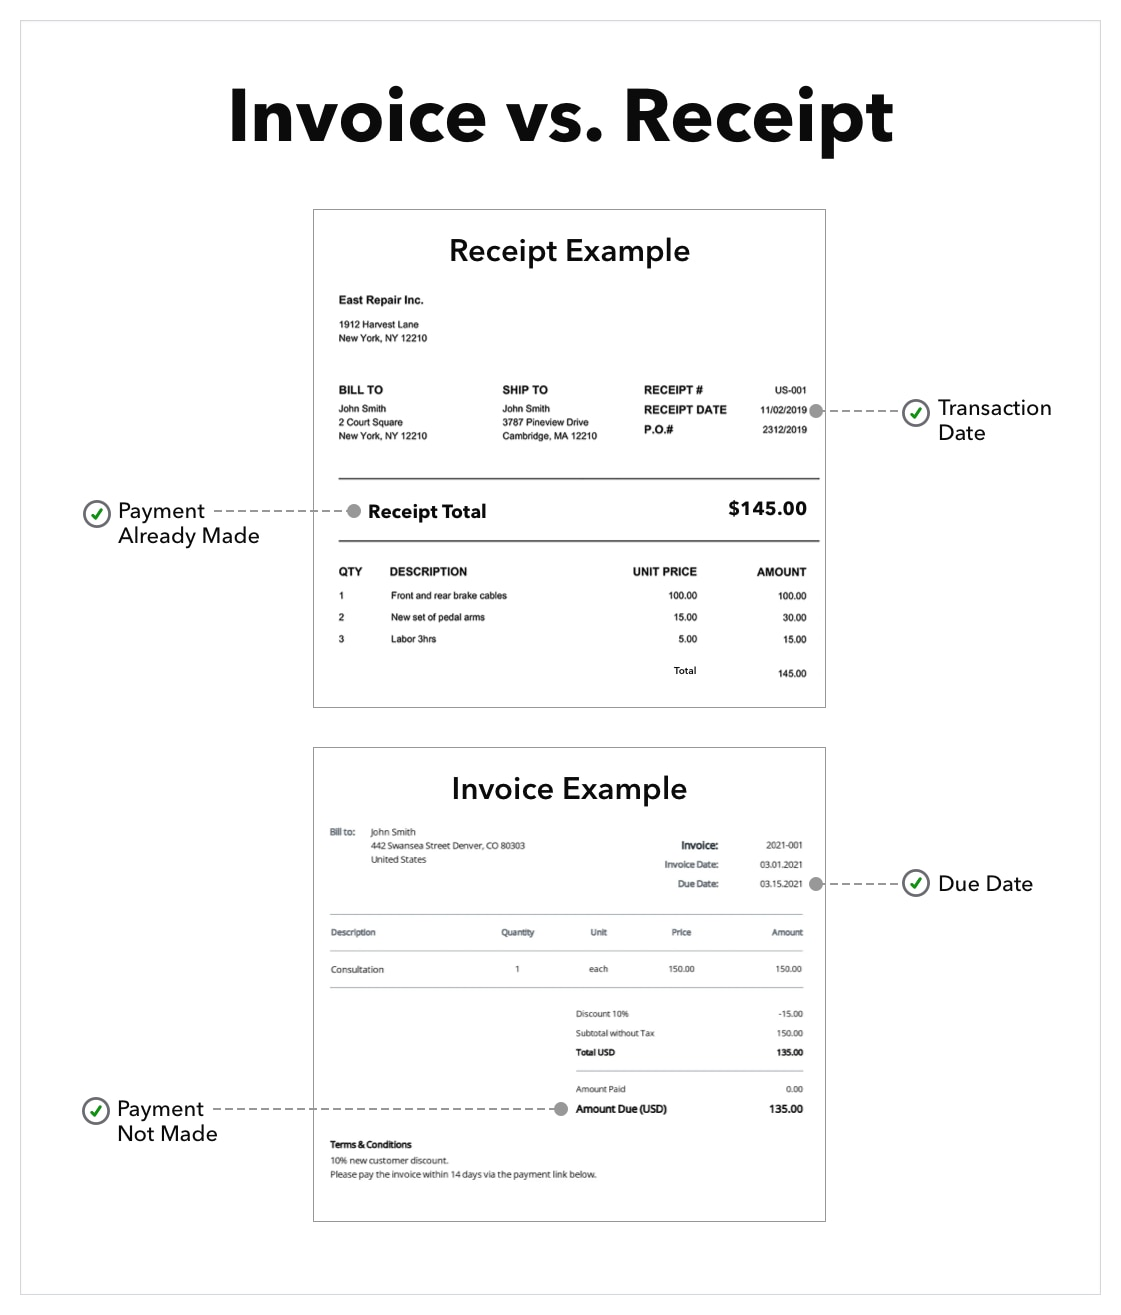 Example of an invoice versus a receipt highlighting key differences between the two documents, including the transaction date and payment already made on the receipt, and the due date and amount due on the invoice.